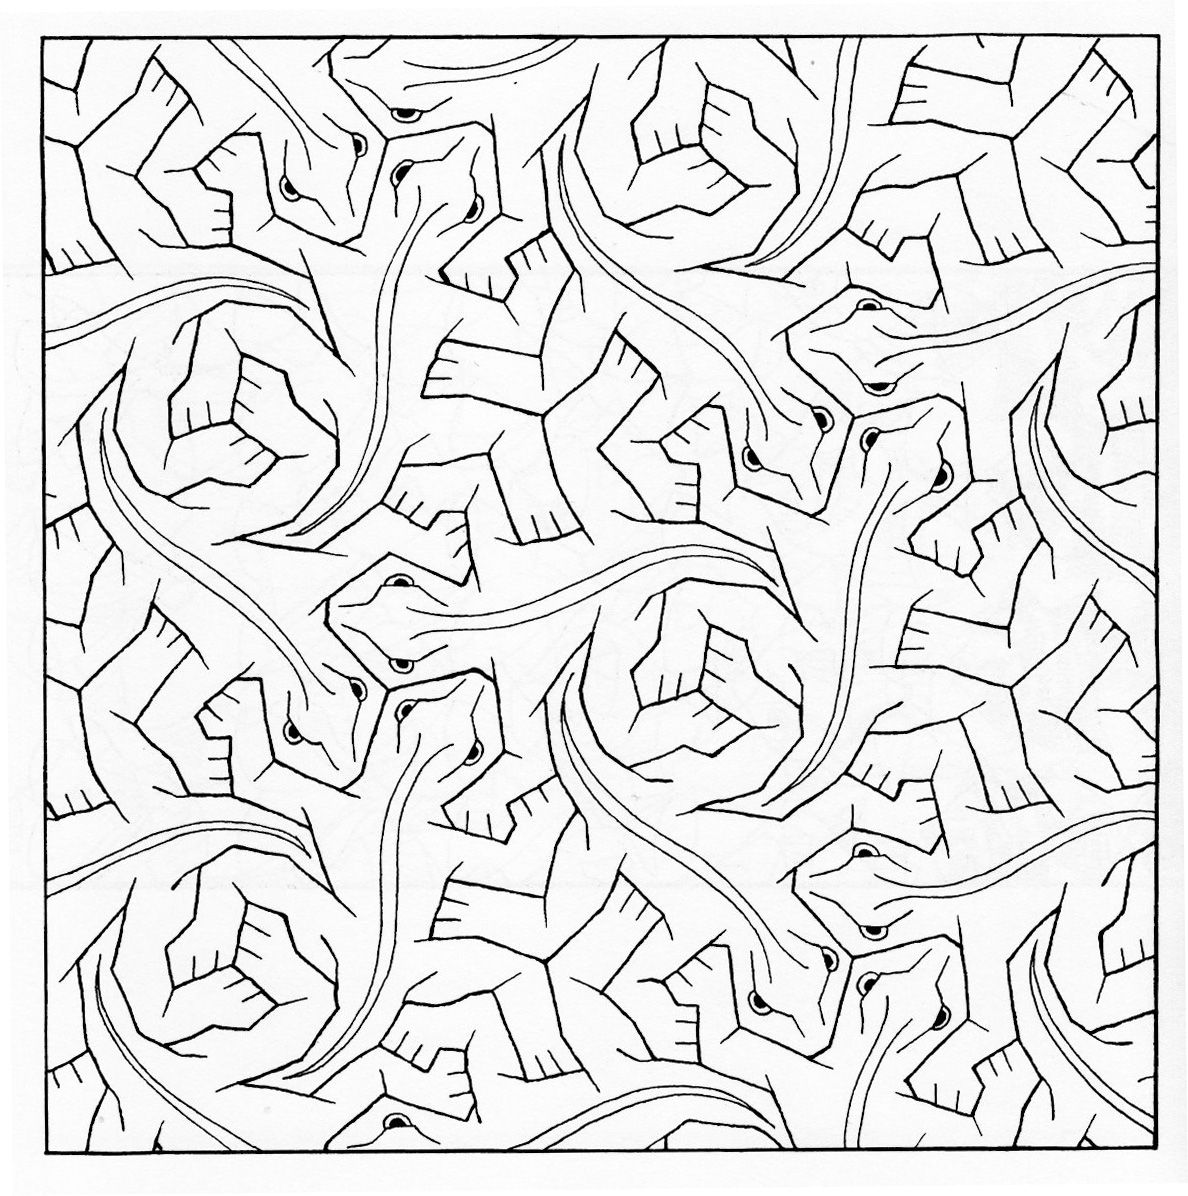 tessellation coloring pages free printable escher fish tessellations templates sketch coloring page printable free tessellation coloring pages